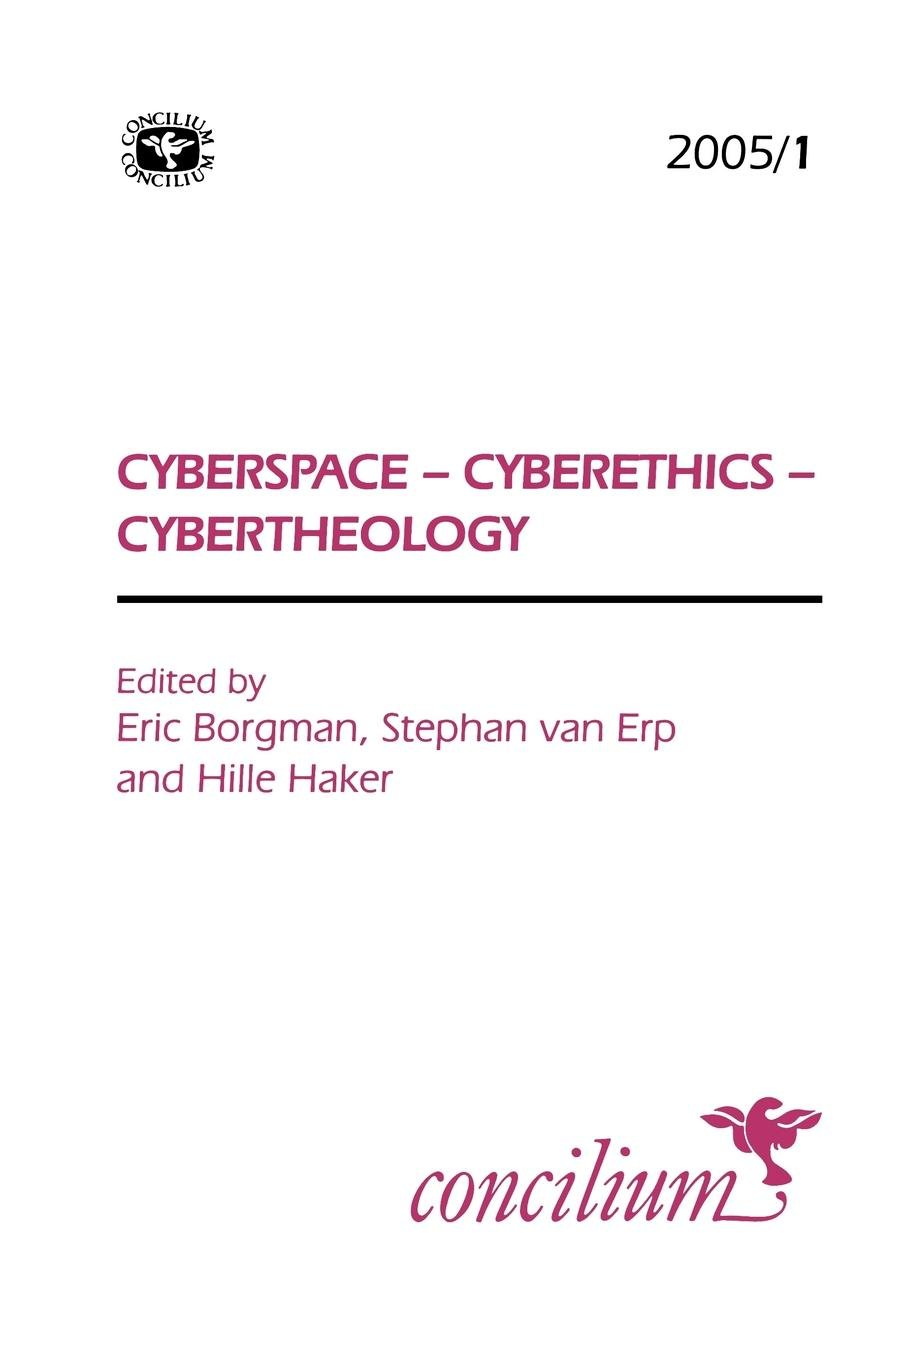 Concilium 2005/1 Cyberspace, Cyberethics, Cybertheology (v. 2005/1) pdf